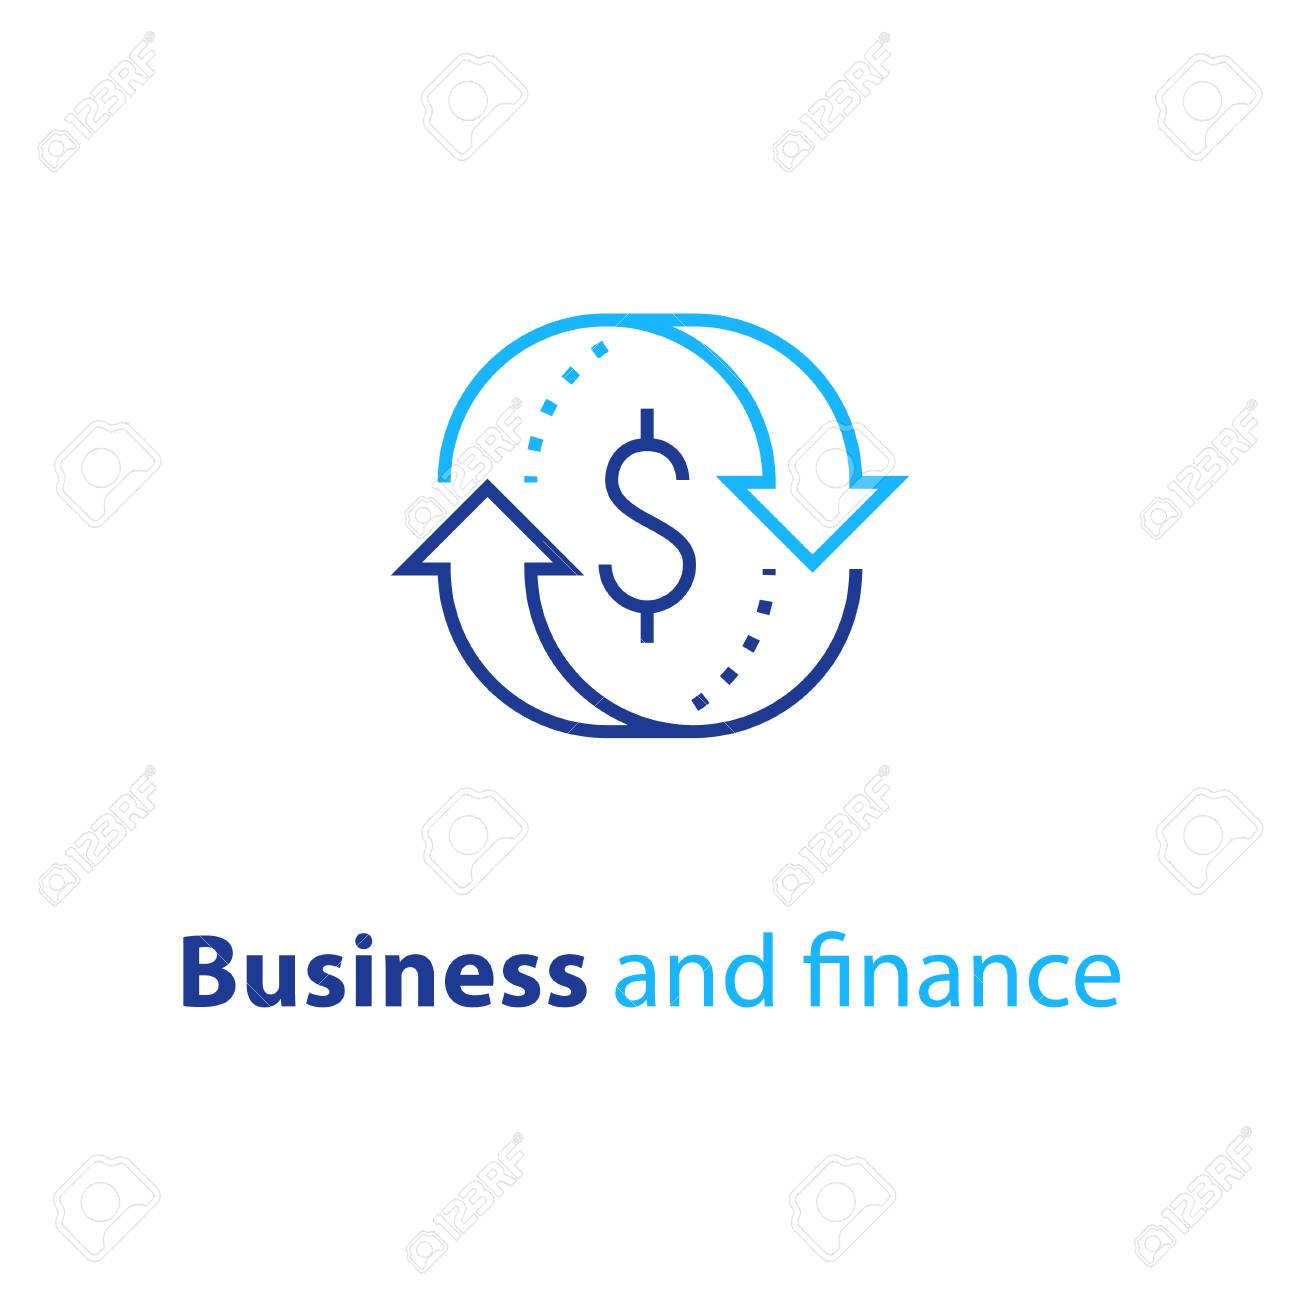 Currency exchange, cash back, quick loan, mortgage refinance, refund, insurance concept, fund management, business solution, finance service, return on investment, stock market, vector line icon - 95252655